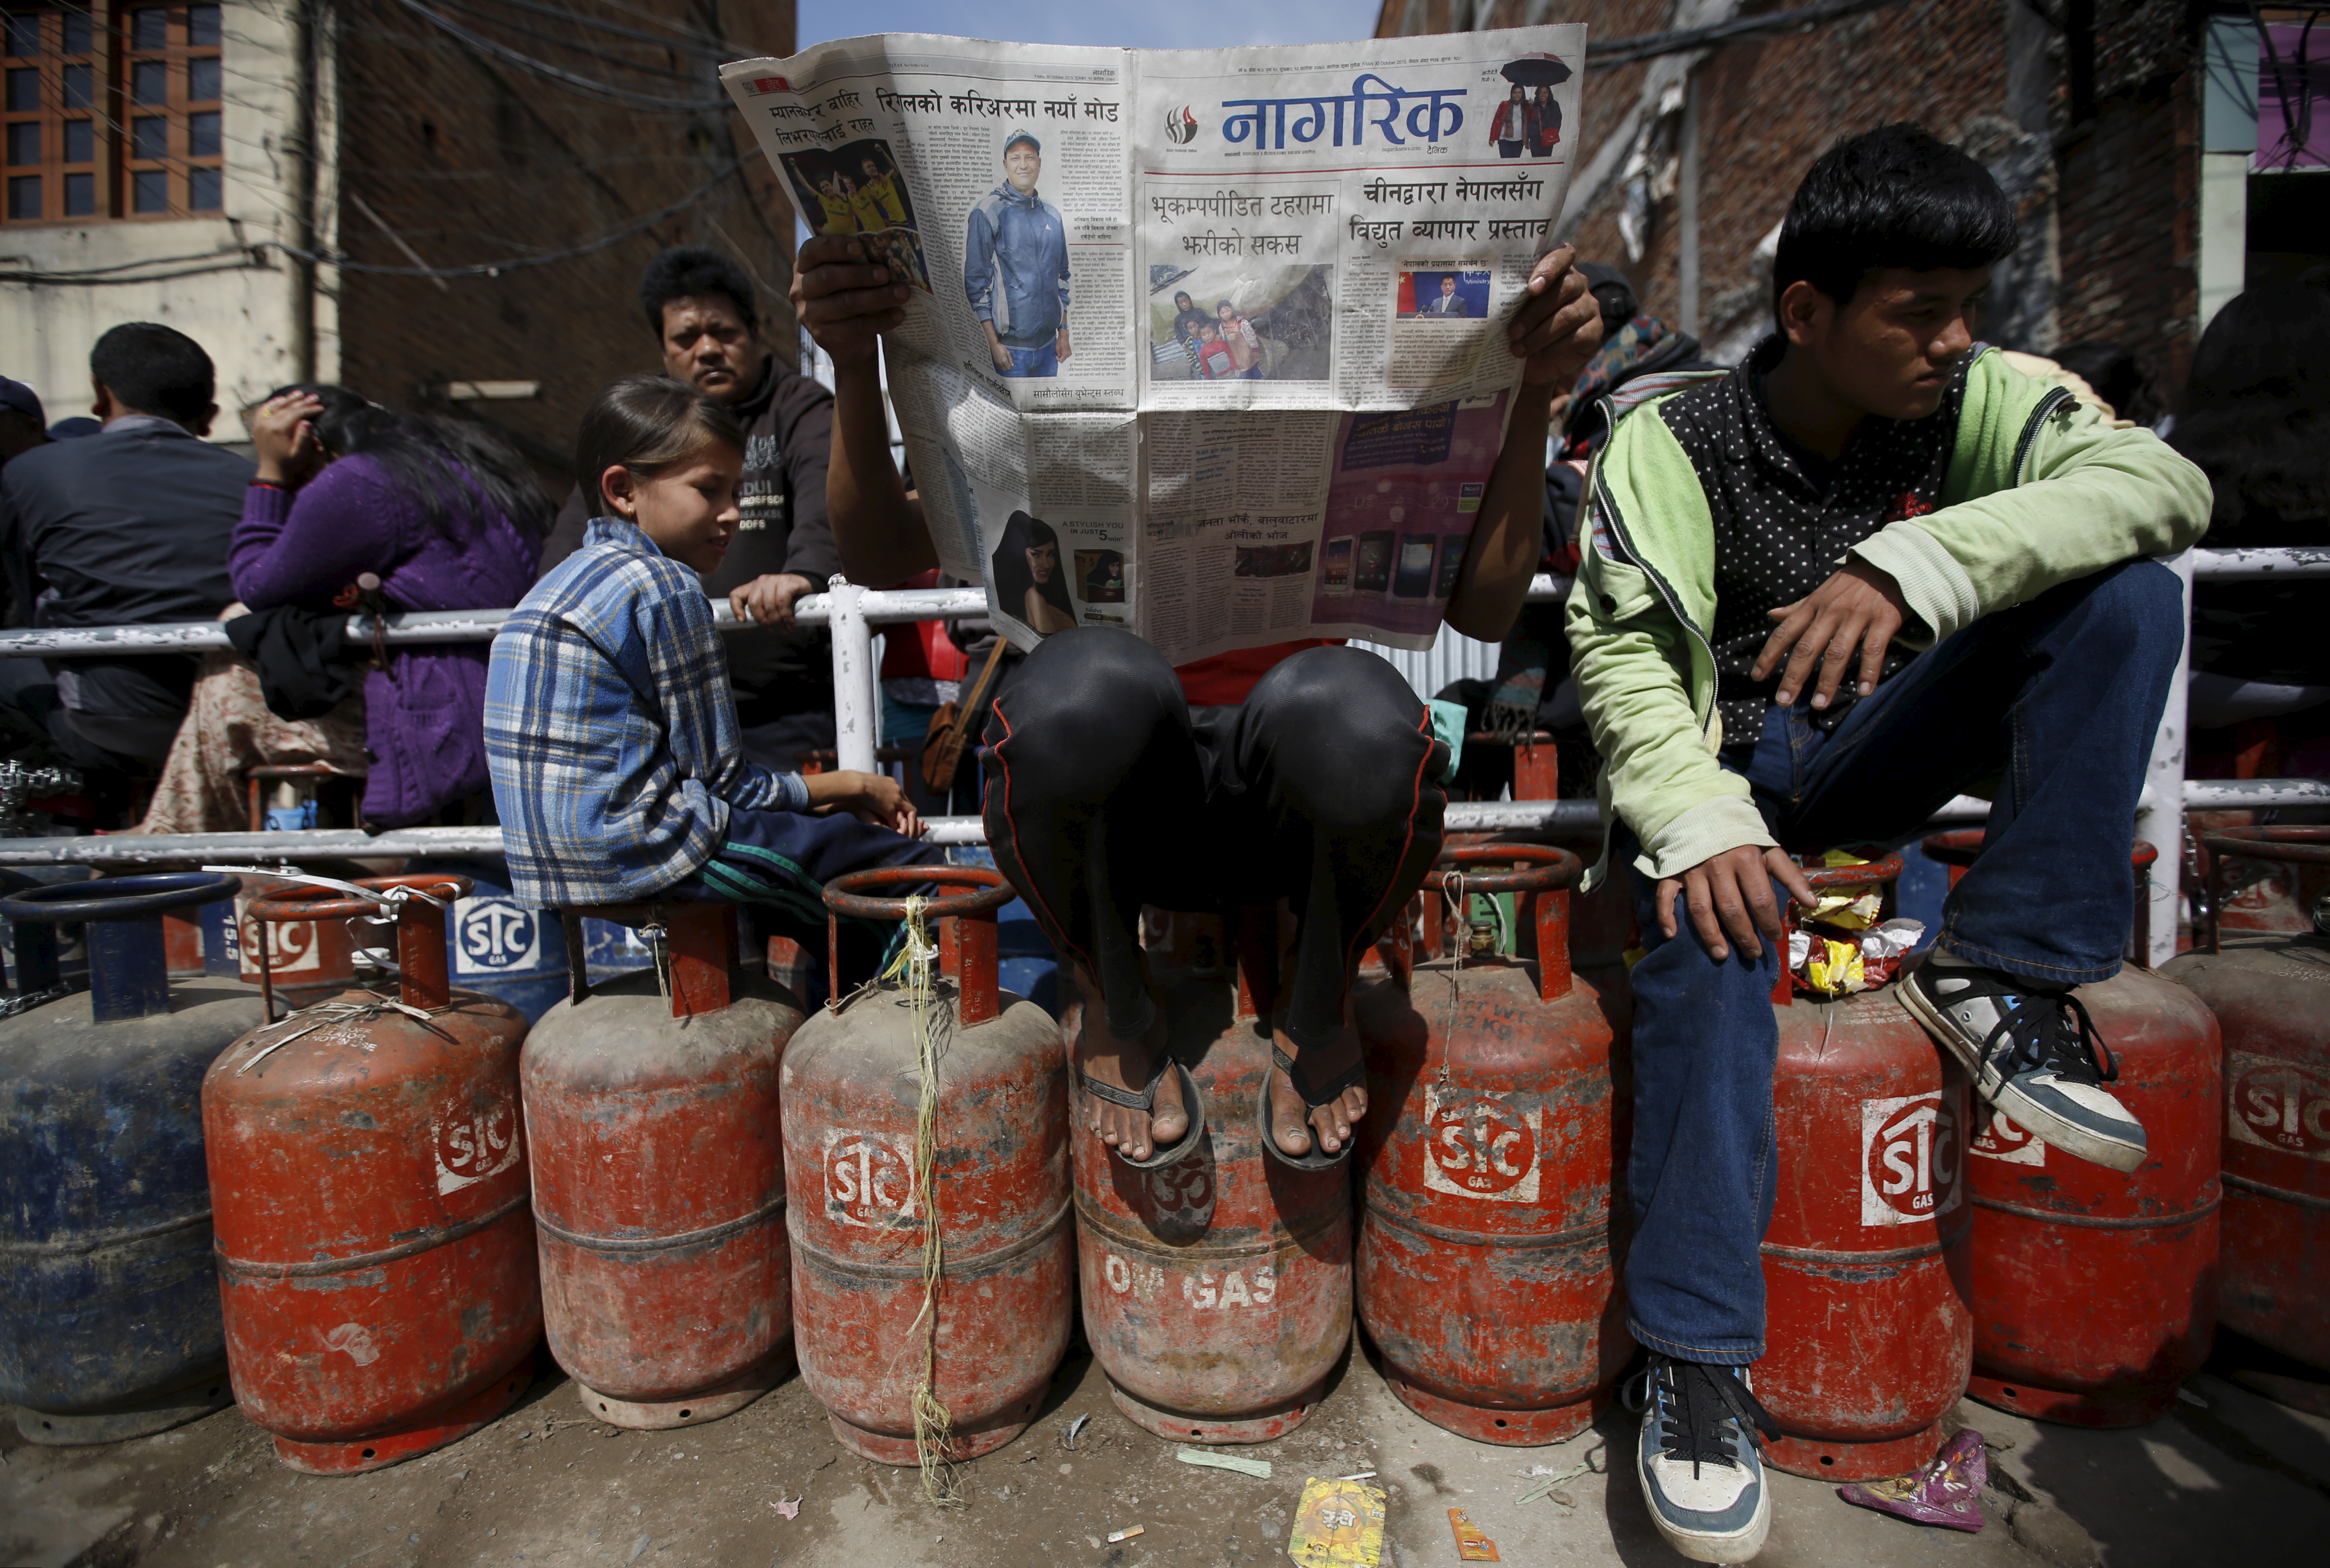 A man, center, reads a newspaper sitting on top of empty cooking-gas cylinder as he waits in a queue to buy cooking gas along with other customers during the ongoing fuel crises that has been continuing for over a month now in Kathmandu on Oct. 30, 2015